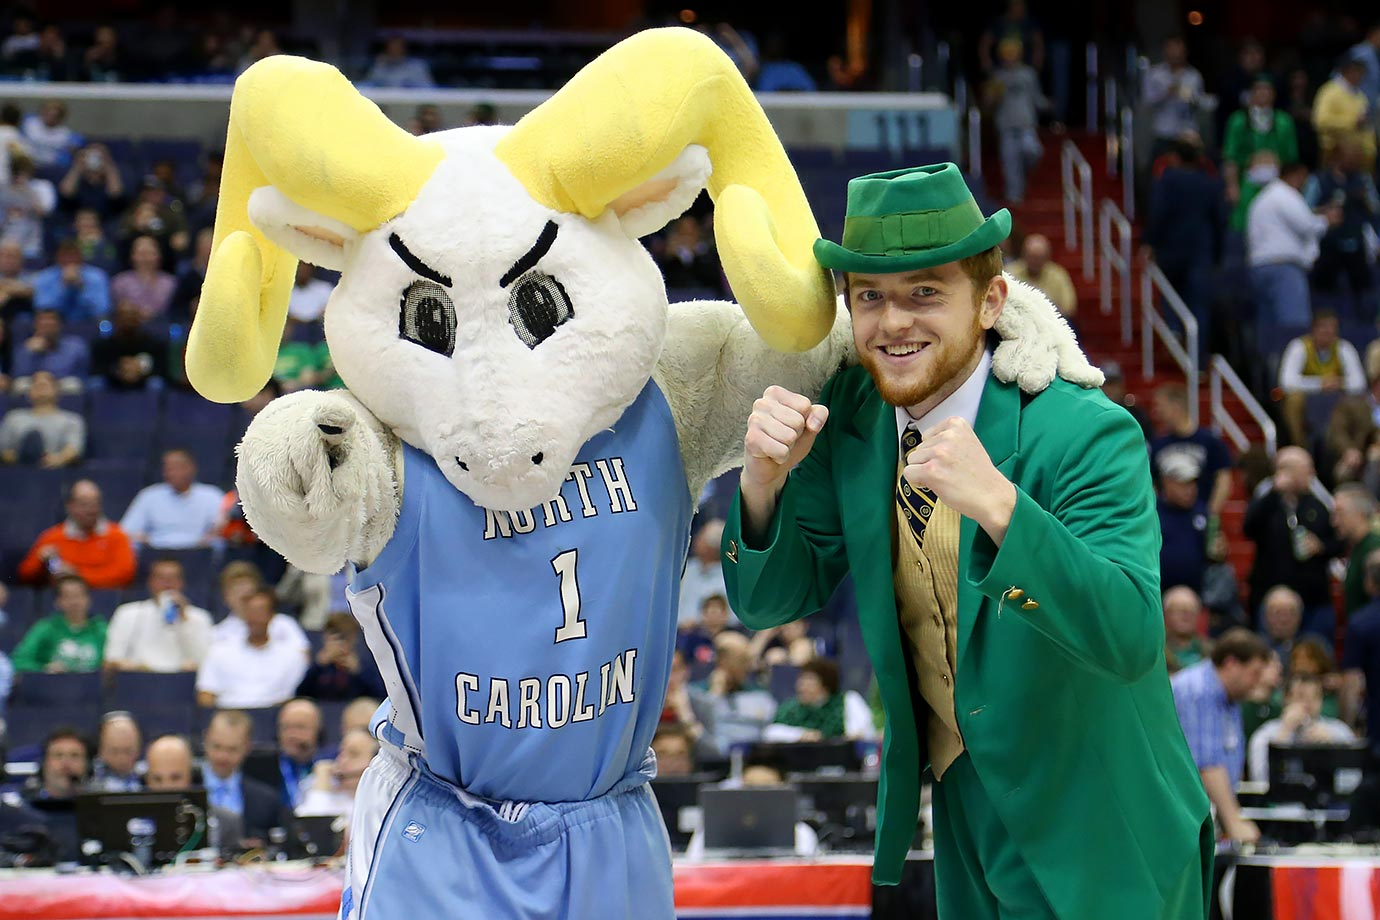 UNC mascot Rameses poses with Notre Dame mascot The Leprechaun before their ACC Tournament game in Washington, D.C.